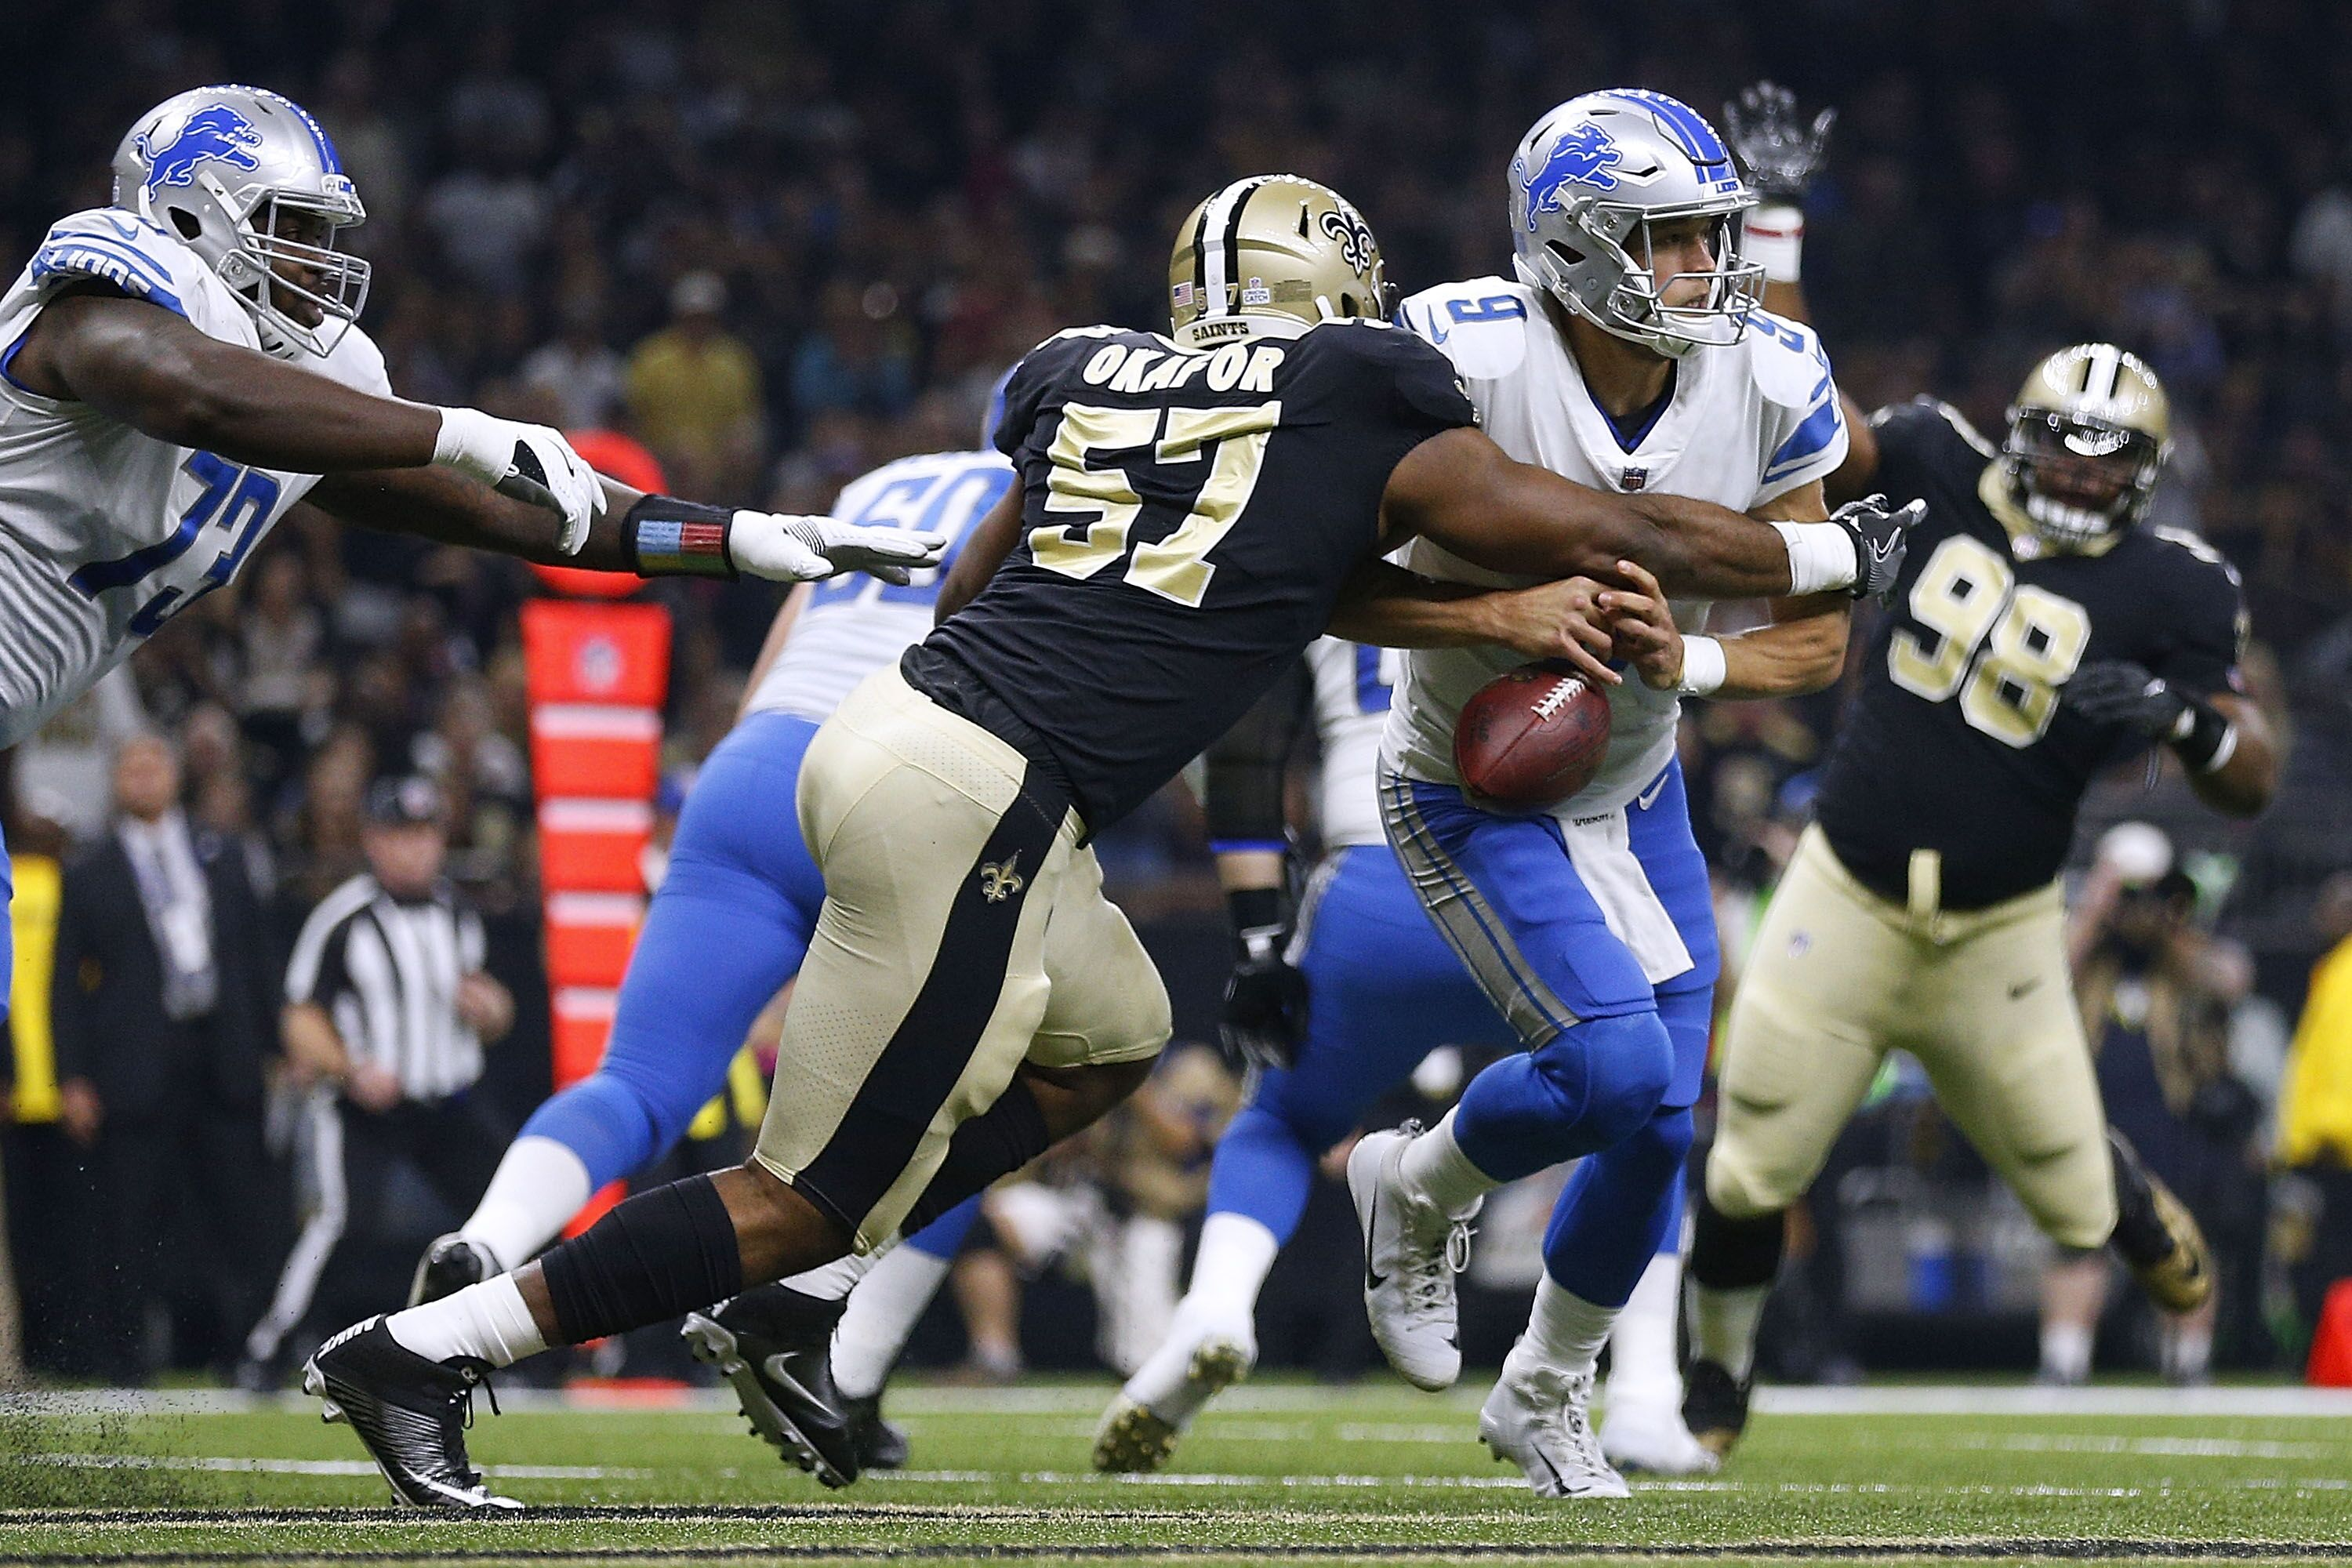 861650182-detroit-lions-v-new-orleans-saints.jpg